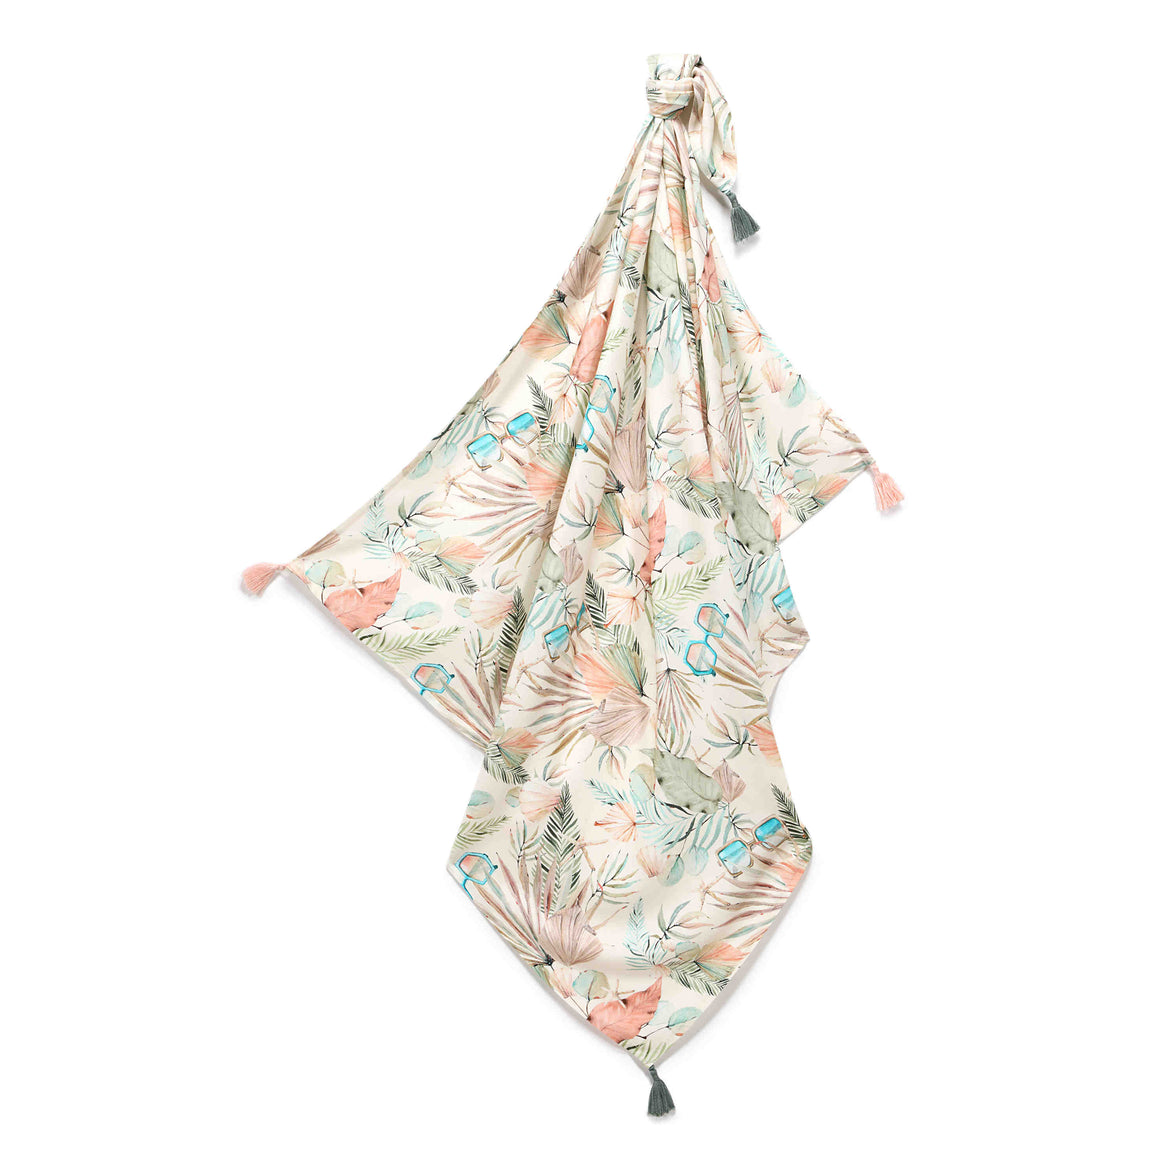 BAMBOO SWADDLE FRINGE light summer blanket - Boho Girl